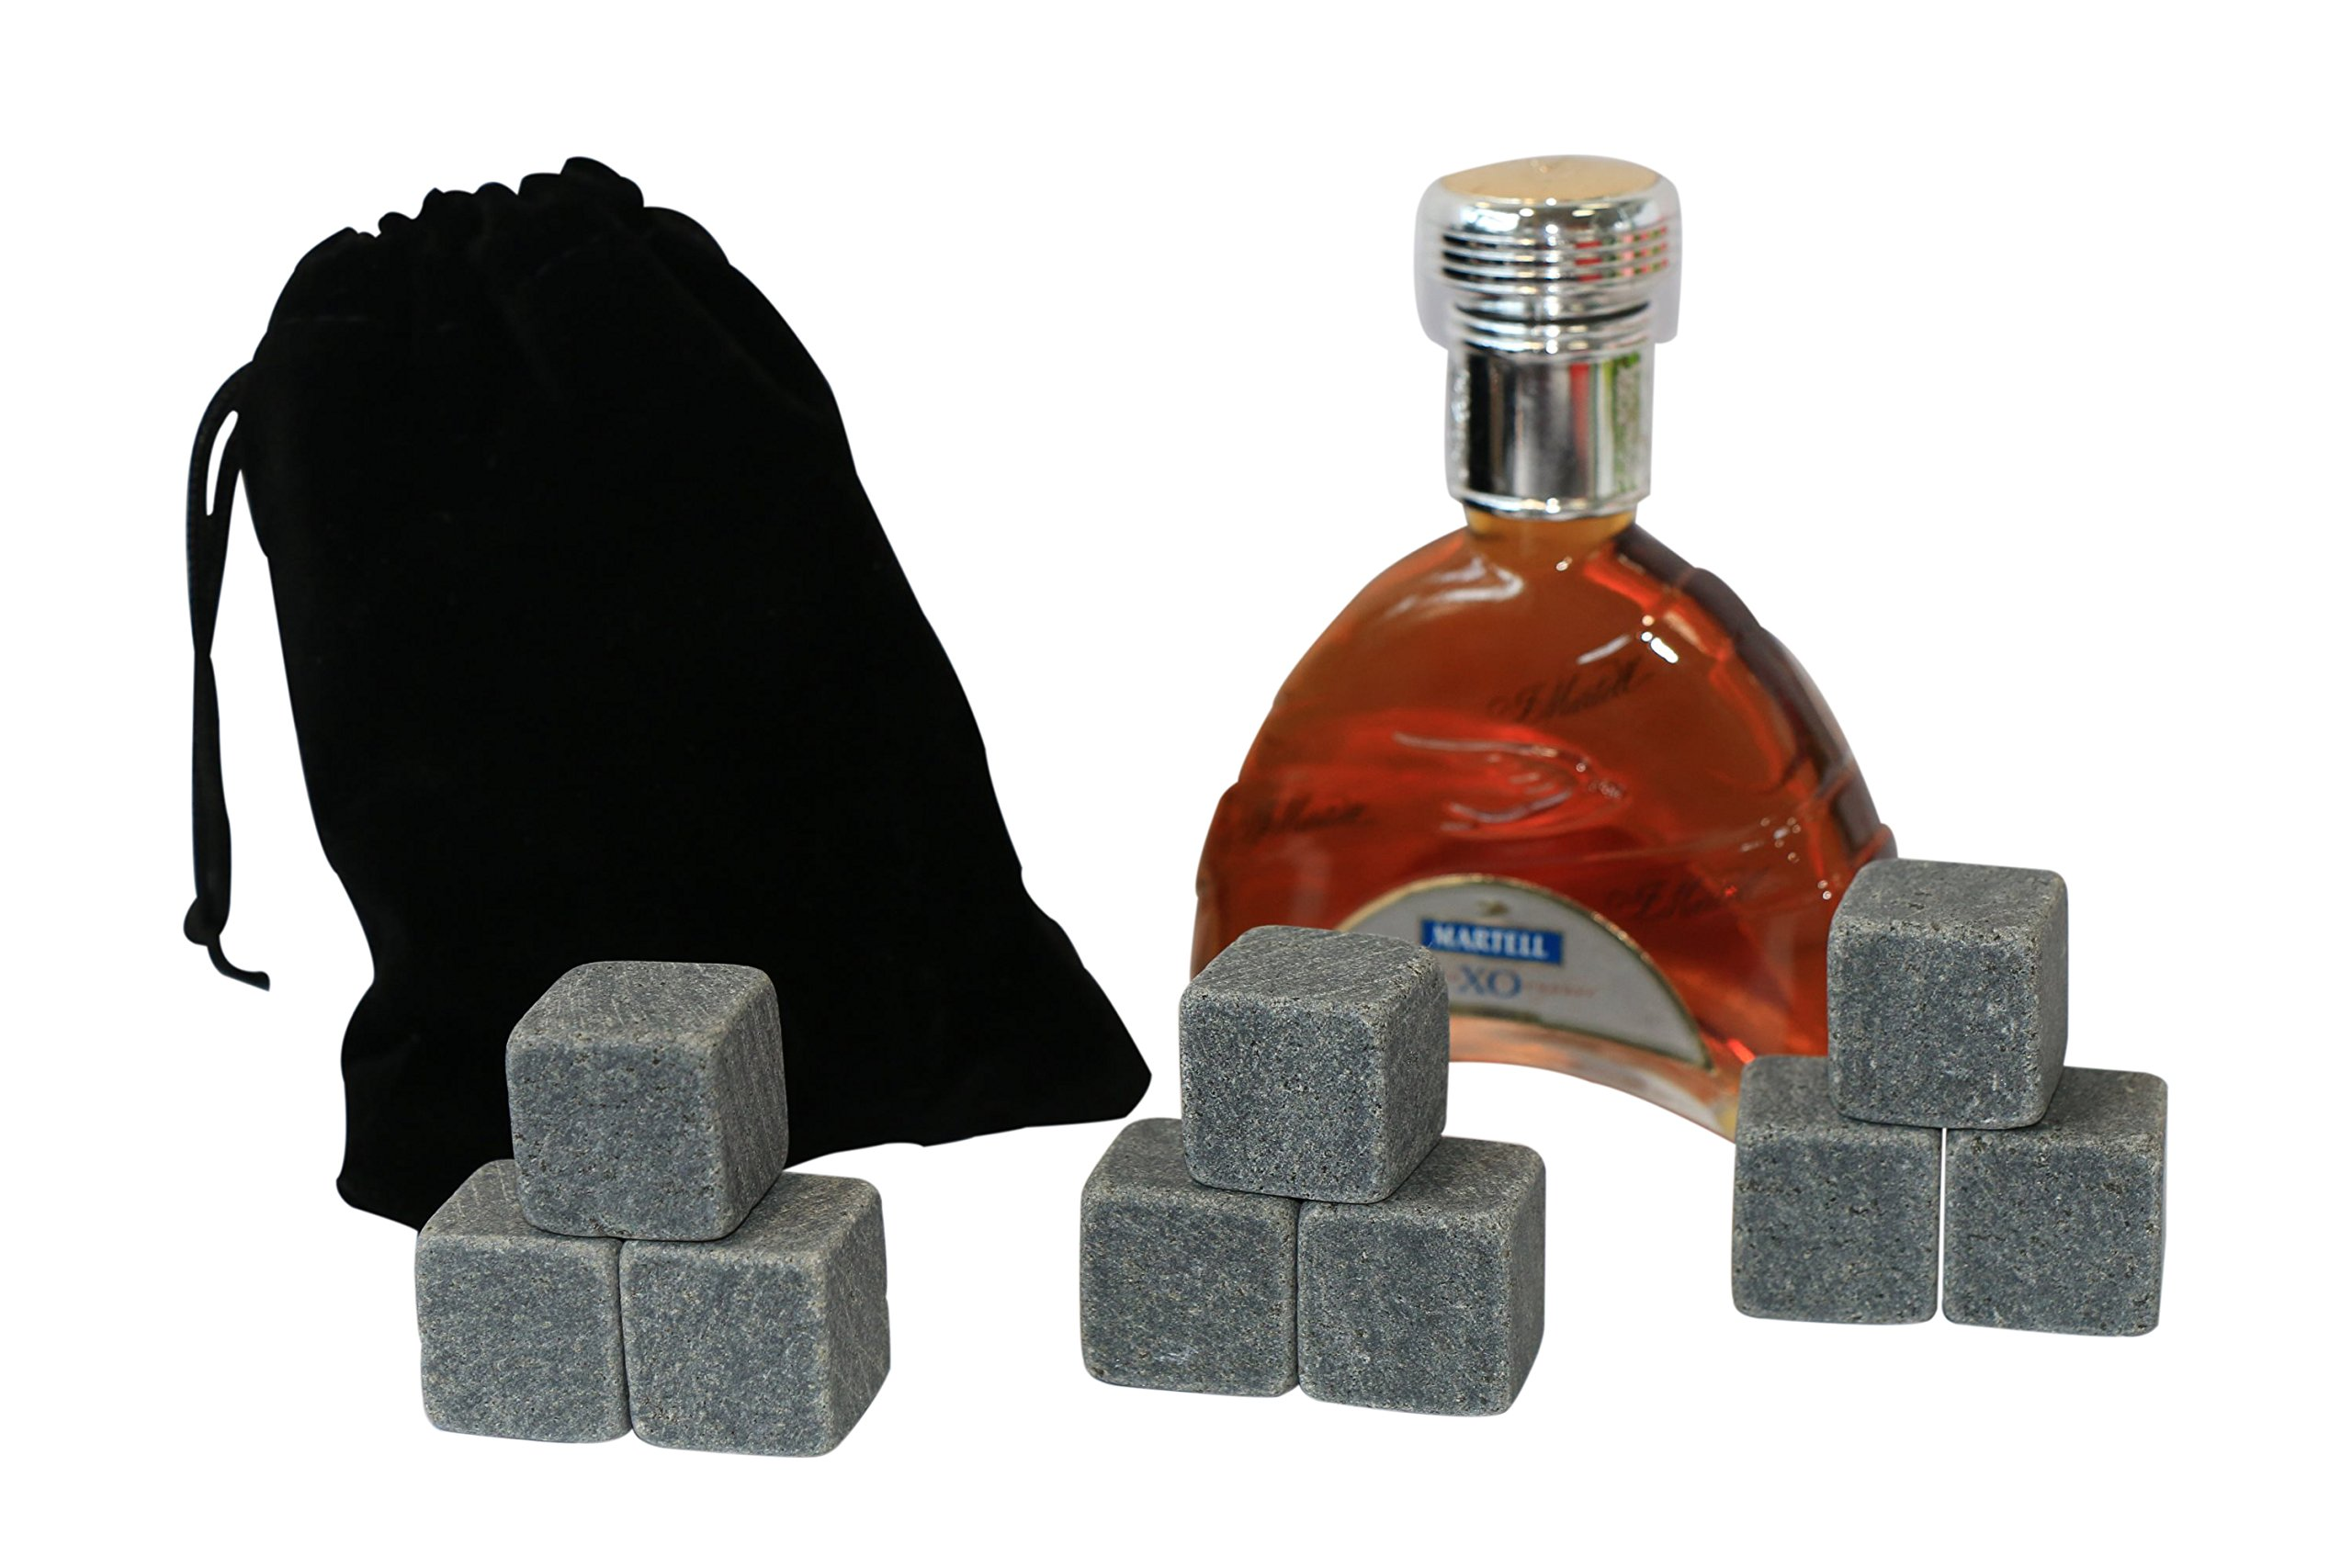 Vina Whiskey Wine Chiller Stones Set, 9 Premium Chilling Ice Rocks for Beer Bourbon etc. Chill Any Beverage Without Diluting It, with a Black Storage Pouch,Dark Grey